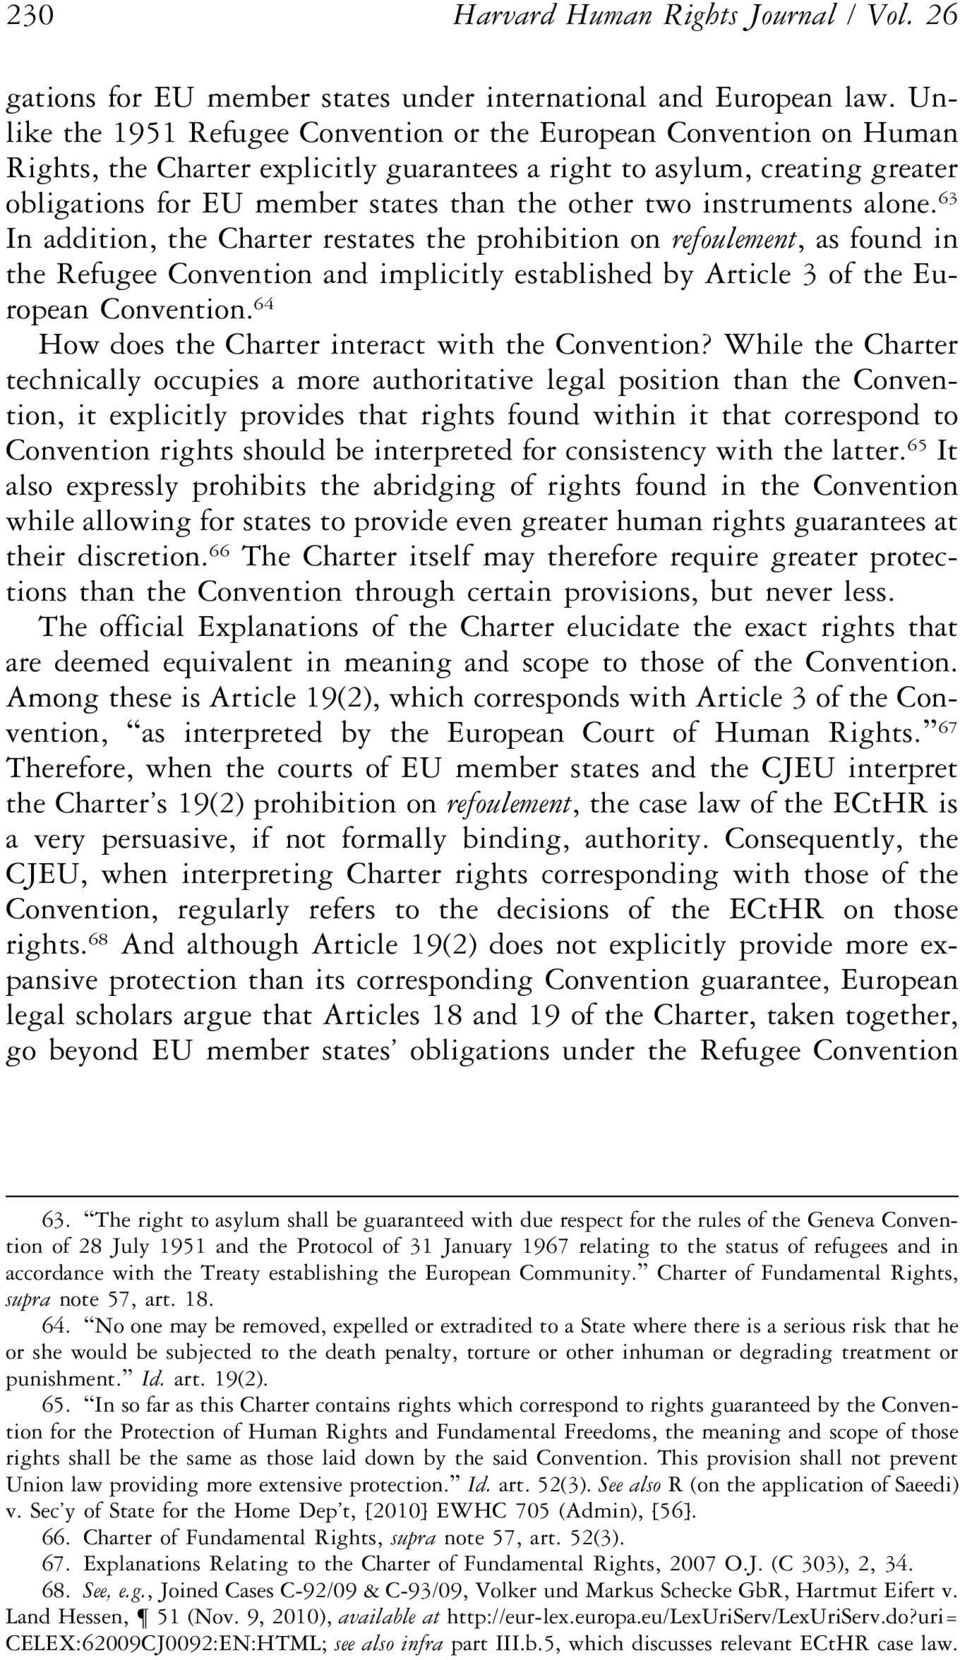 two instruments alone. 63 In addition, the Charter restates the prohibition on refoulement, as found in the Refugee Convention and implicitly established by Article 3 of the European Convention.